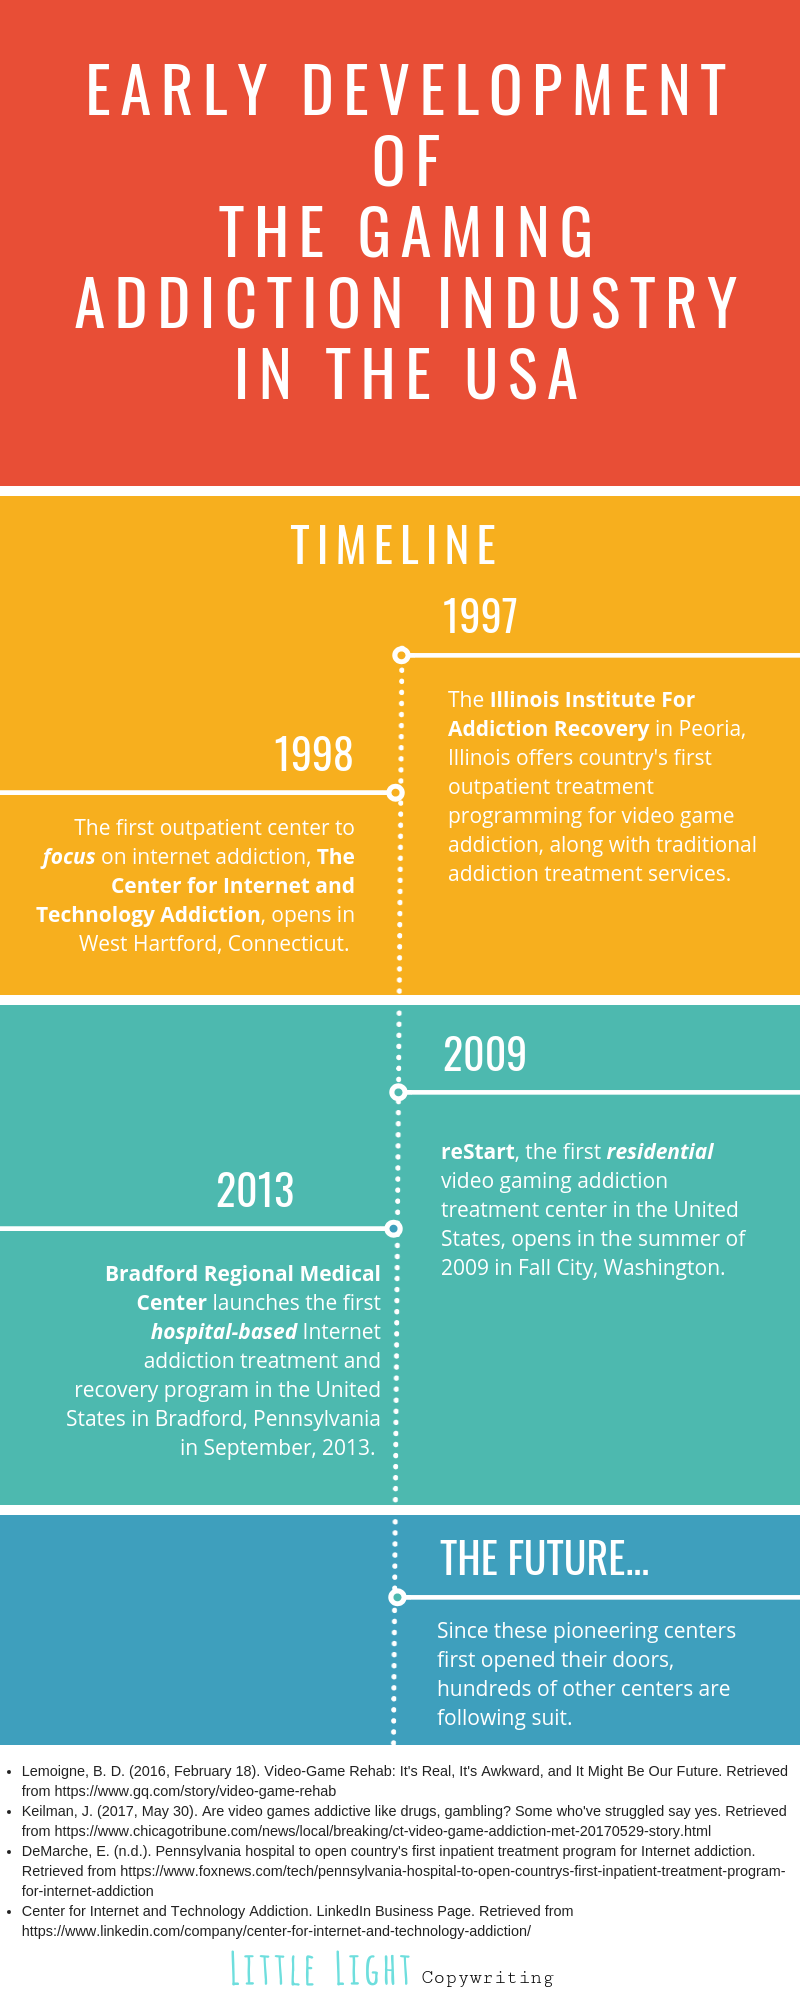 timeline of the development of internet gaming addiction treatment centers in the united states